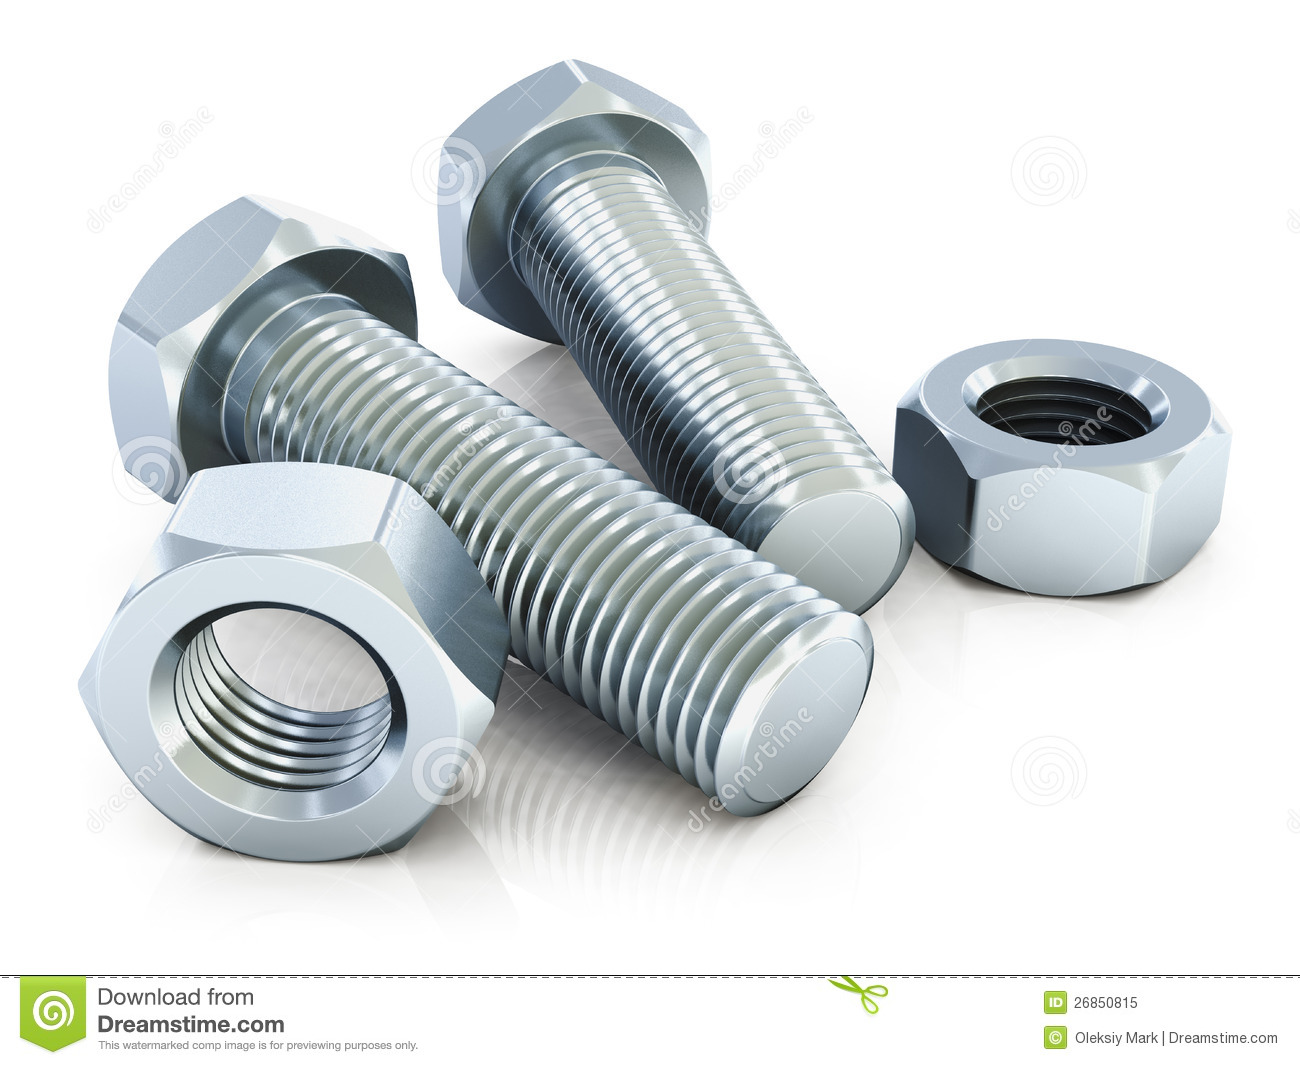 Pictures Of Nuts And Bolts >> Bolts And Nuts Royalty Free Stock Photo - Image: 26850815